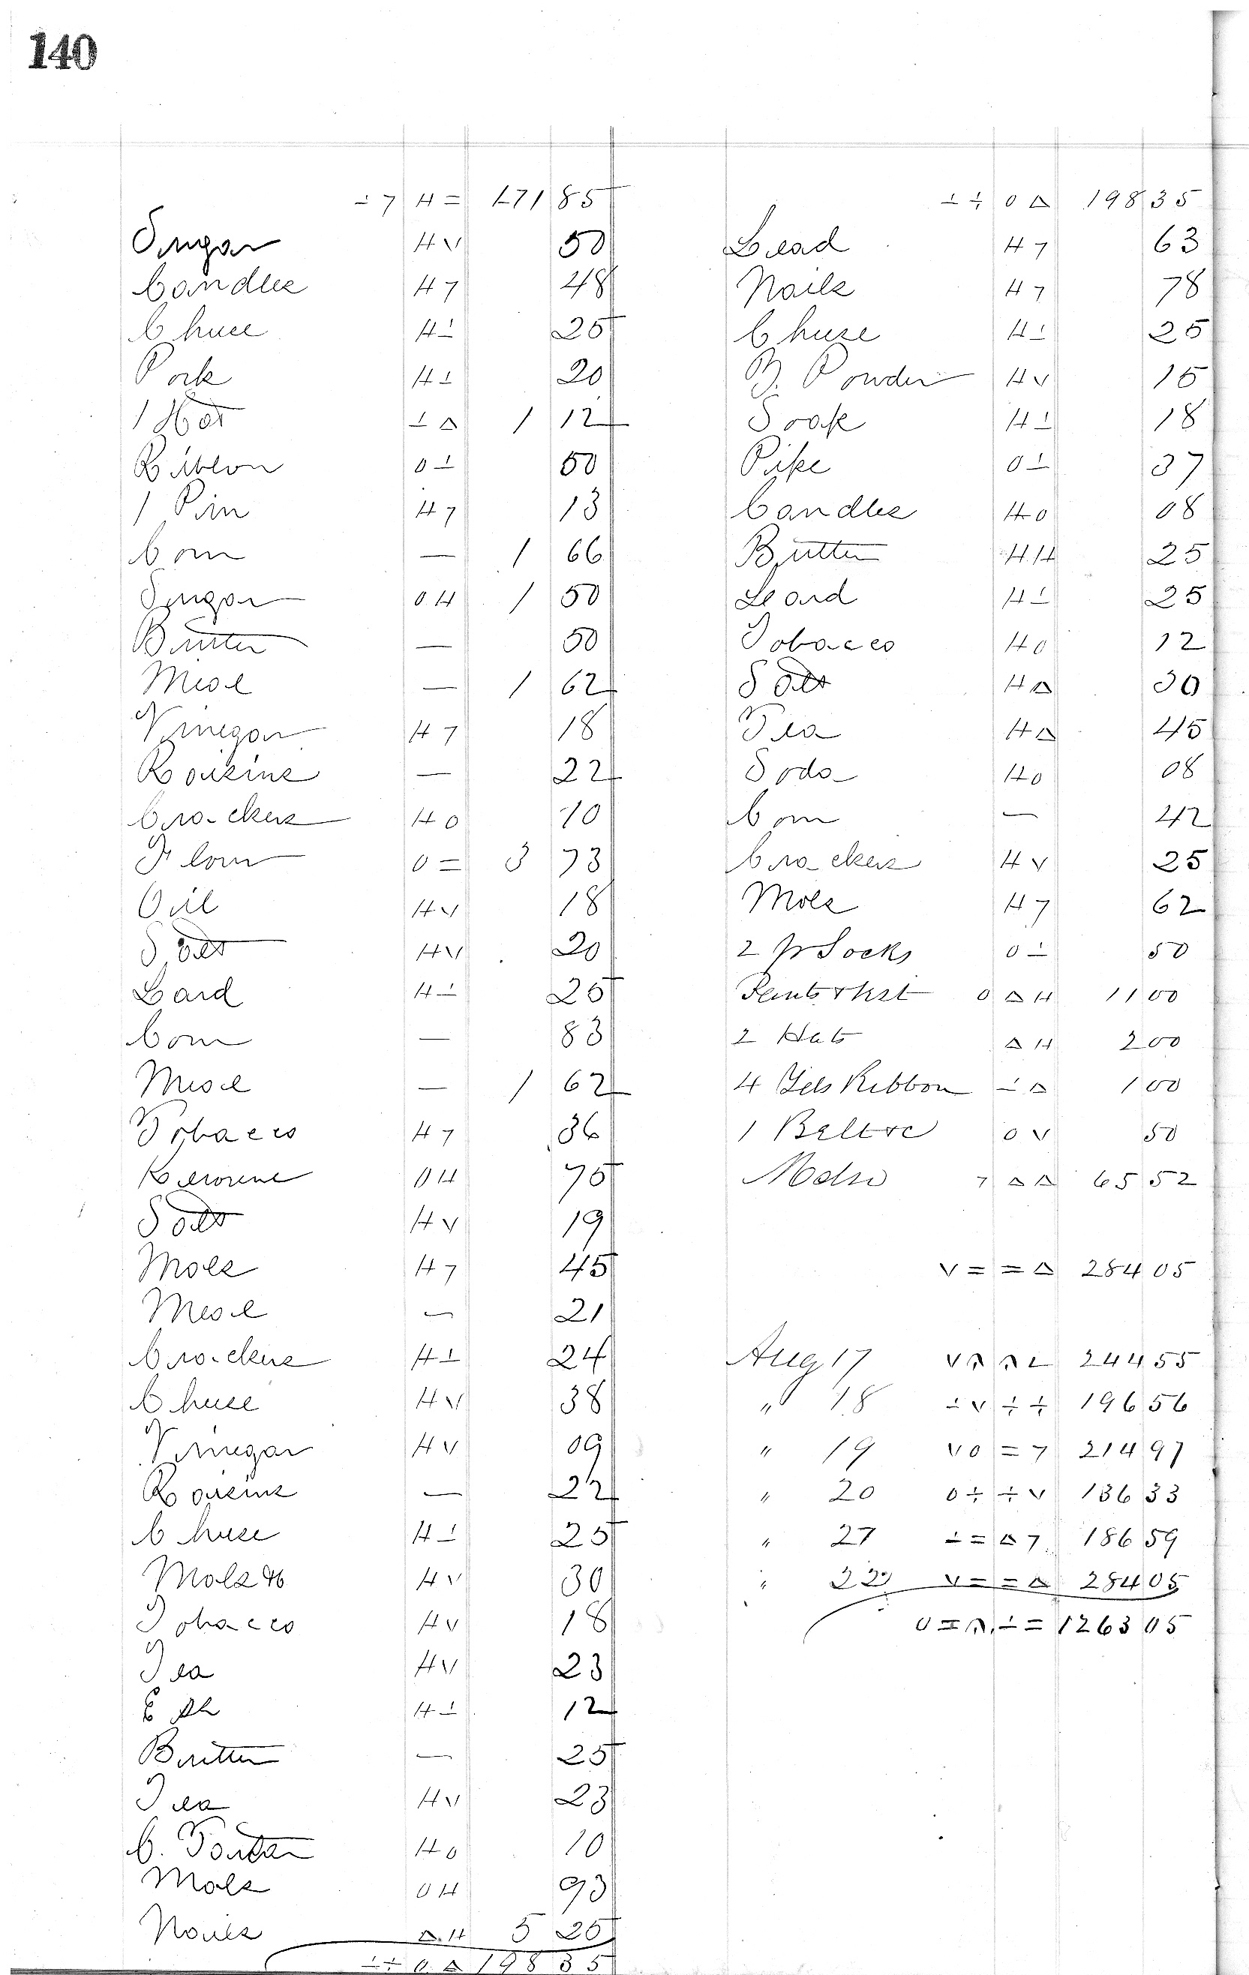 Page 140 from H.K. Keith's 1863 register of daily sales